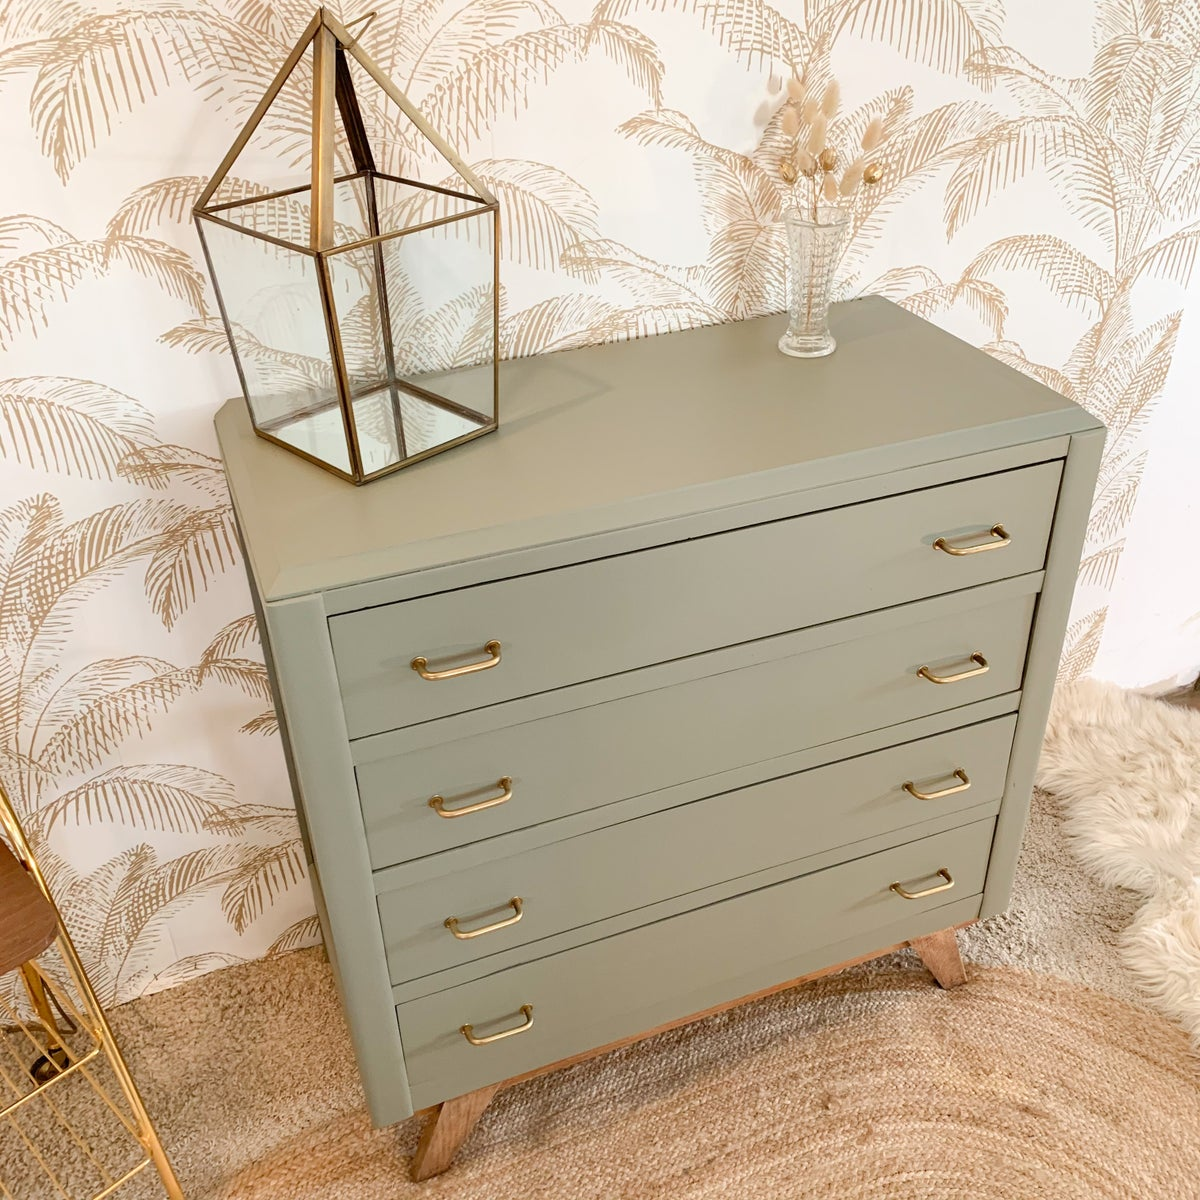 Image of VENDUE/SOLD OUT Commode Gold